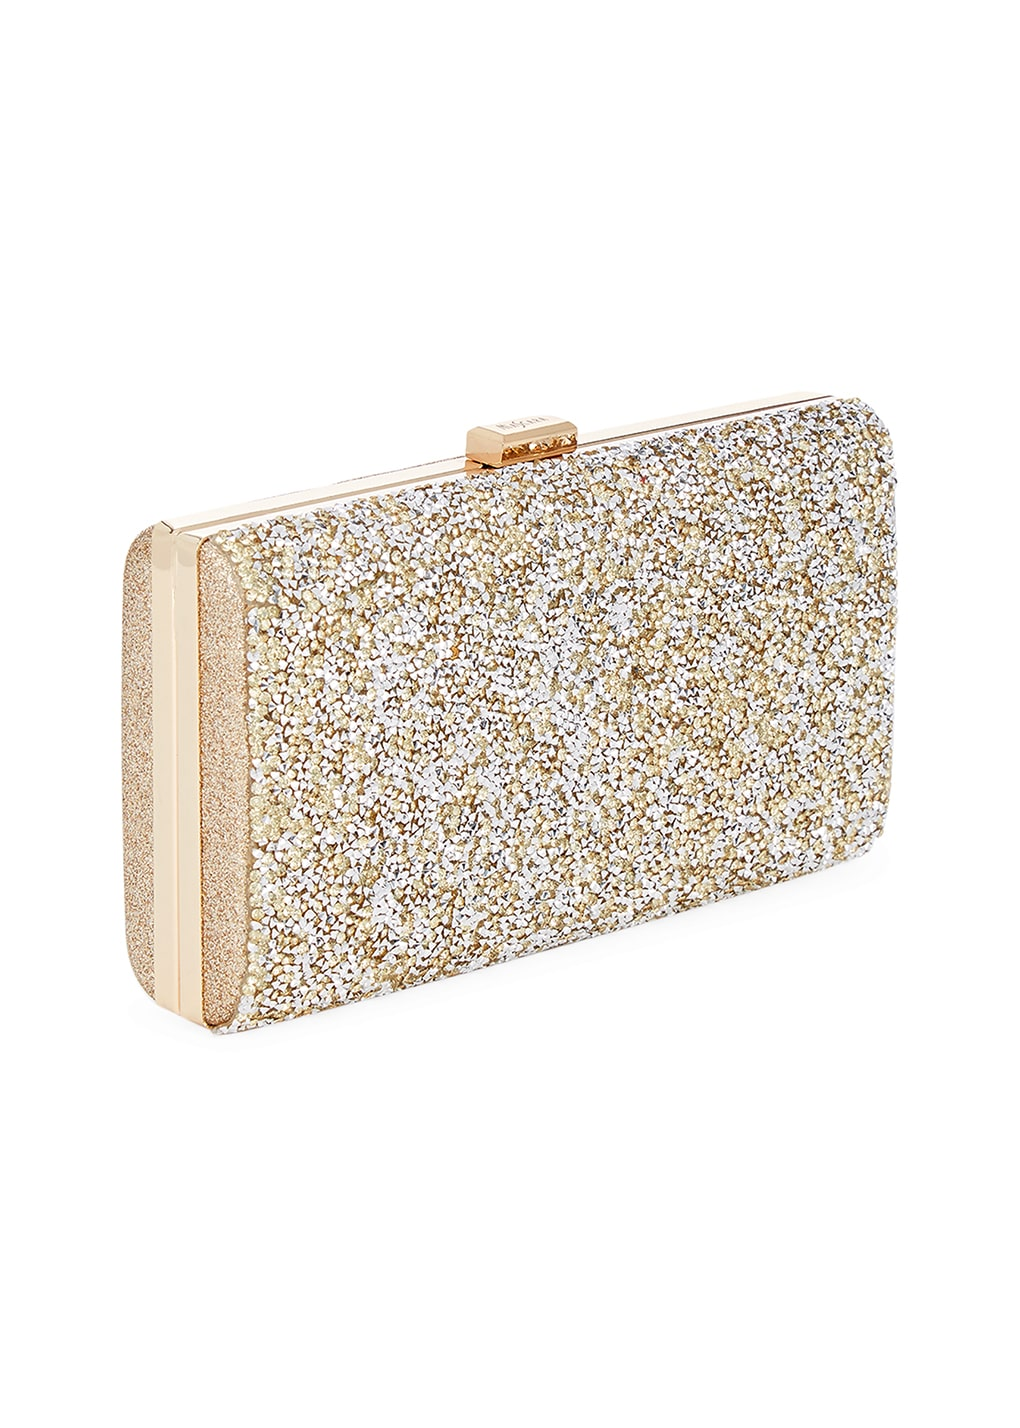 5049eef8555c Gold Clutch Bags